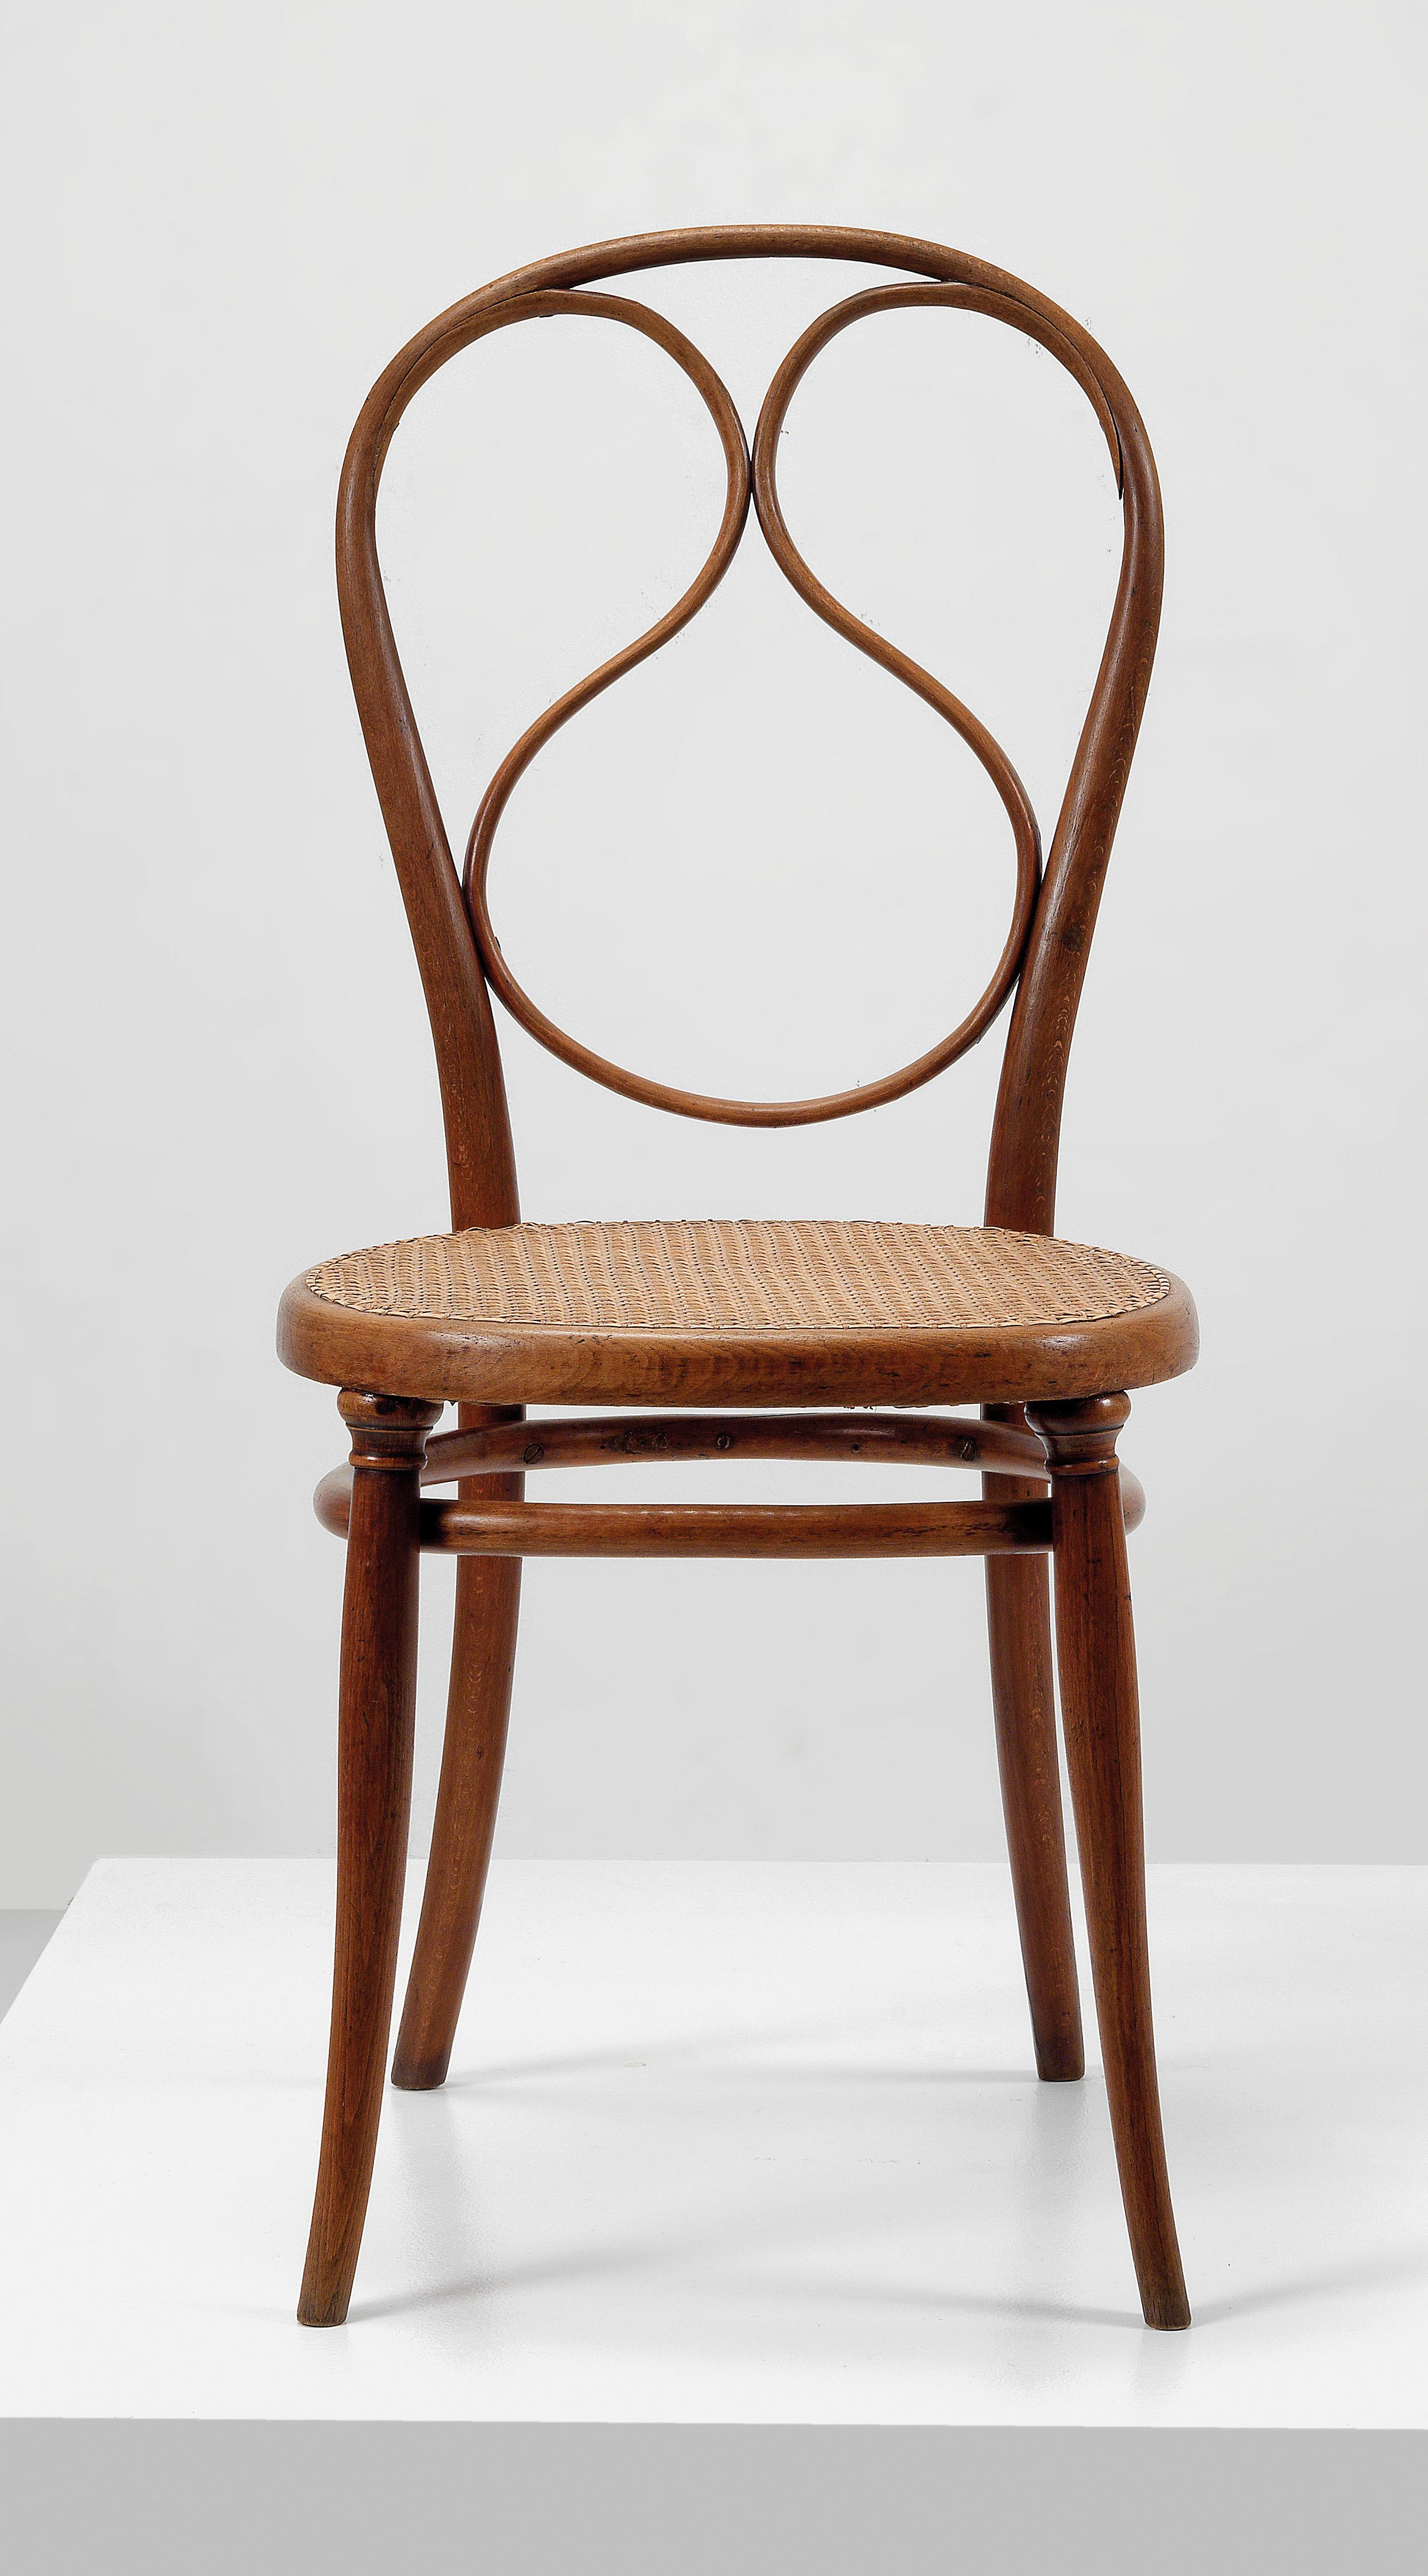 A bentwood chair Model No. 1 designed by Michael Thonet  sc 1 st  Dorotheum & A bentwood chair Model No. 1 designed by Michael Thonet - Design ...